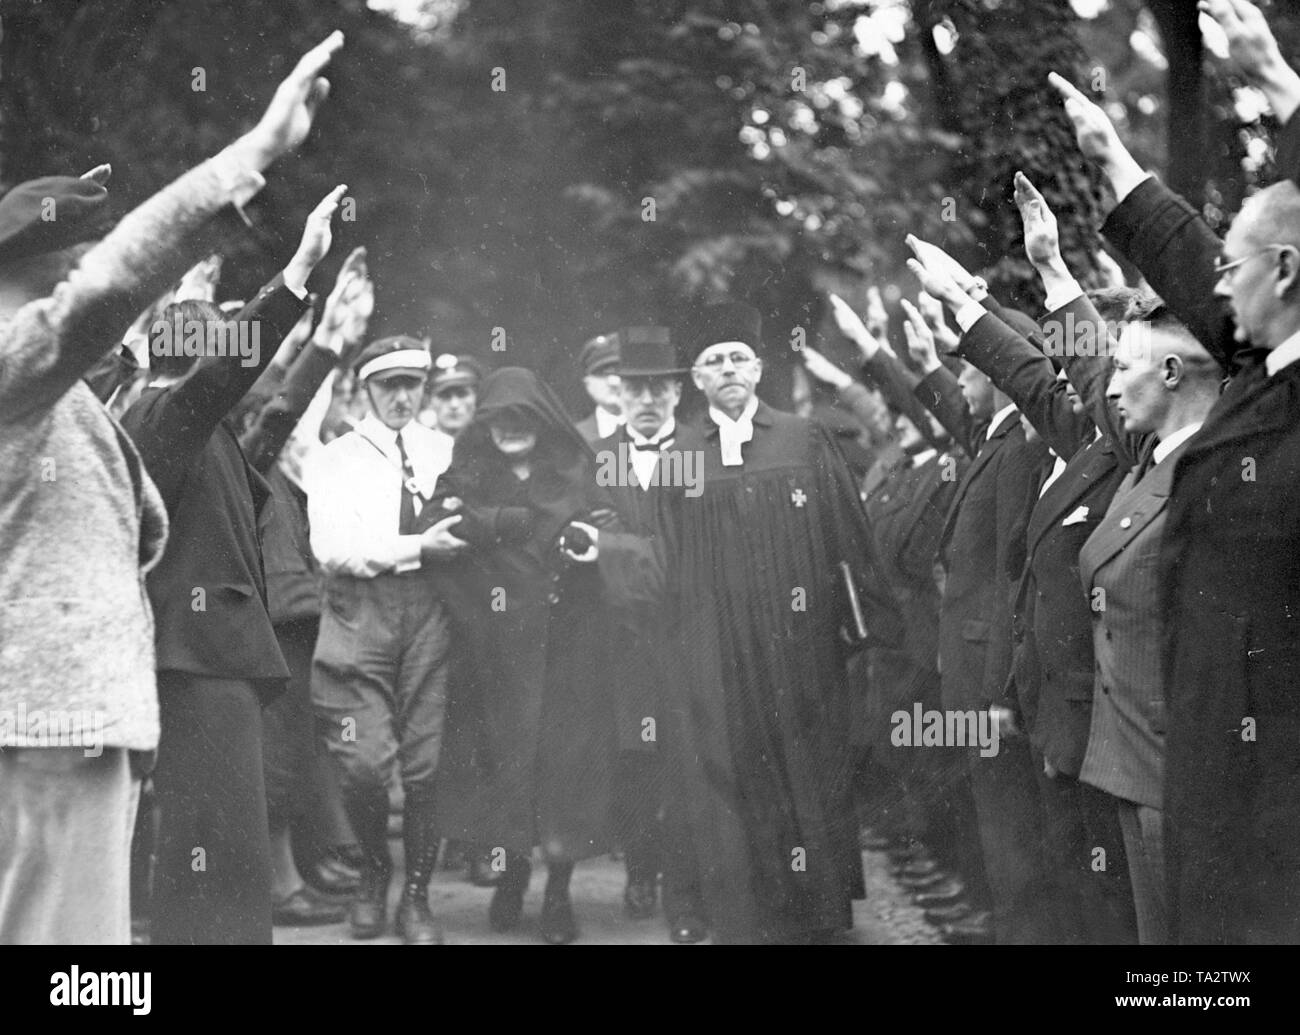 Burial of Herrmann Tielsch, murdered by the Communists, in the municipal cemetery at Bergmannstrasse in Berlin. The parents of the victim walk along with the clergymen and the guards of honor. The participants show the Hitler salute. - Stock Image